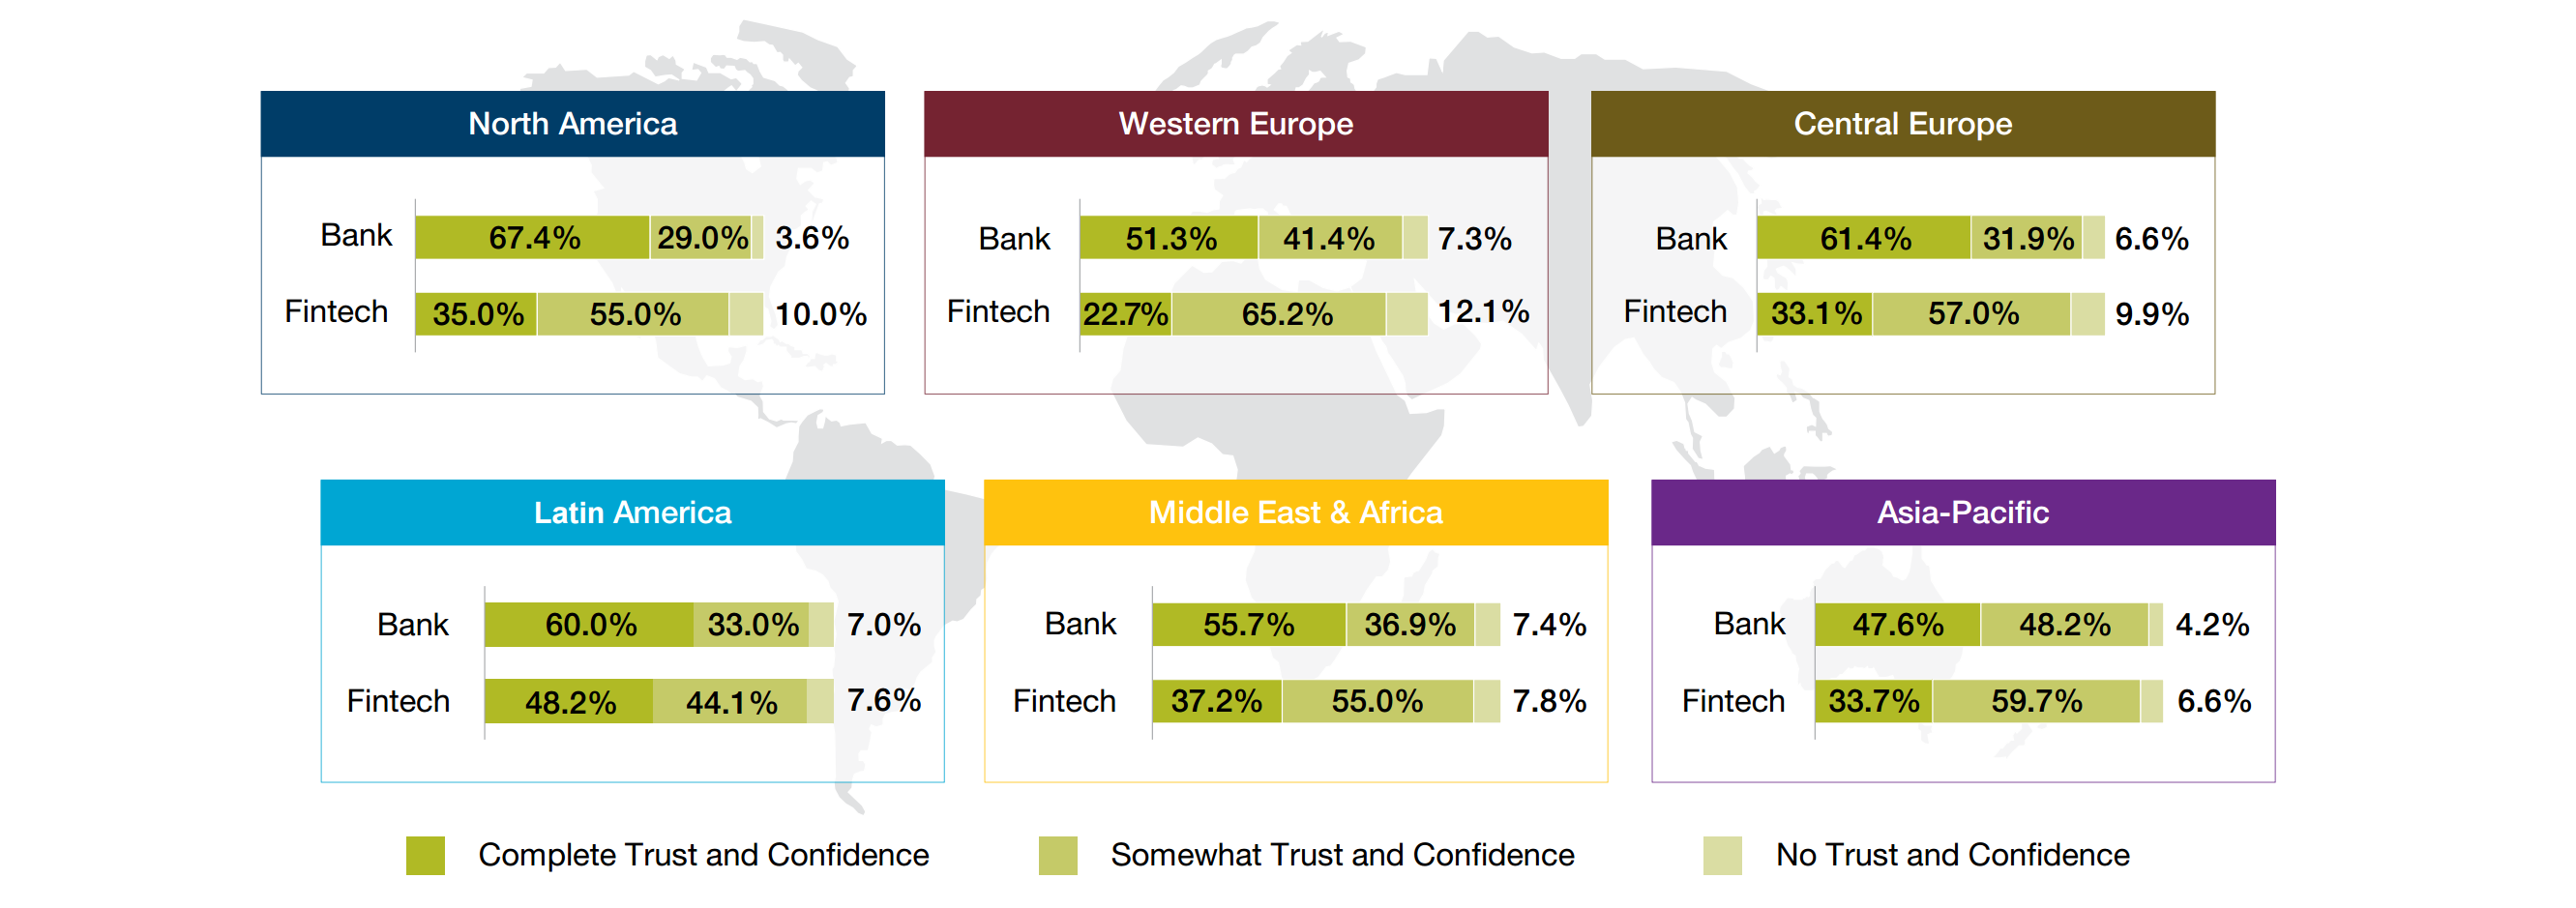 Image: World Retail Banking Report